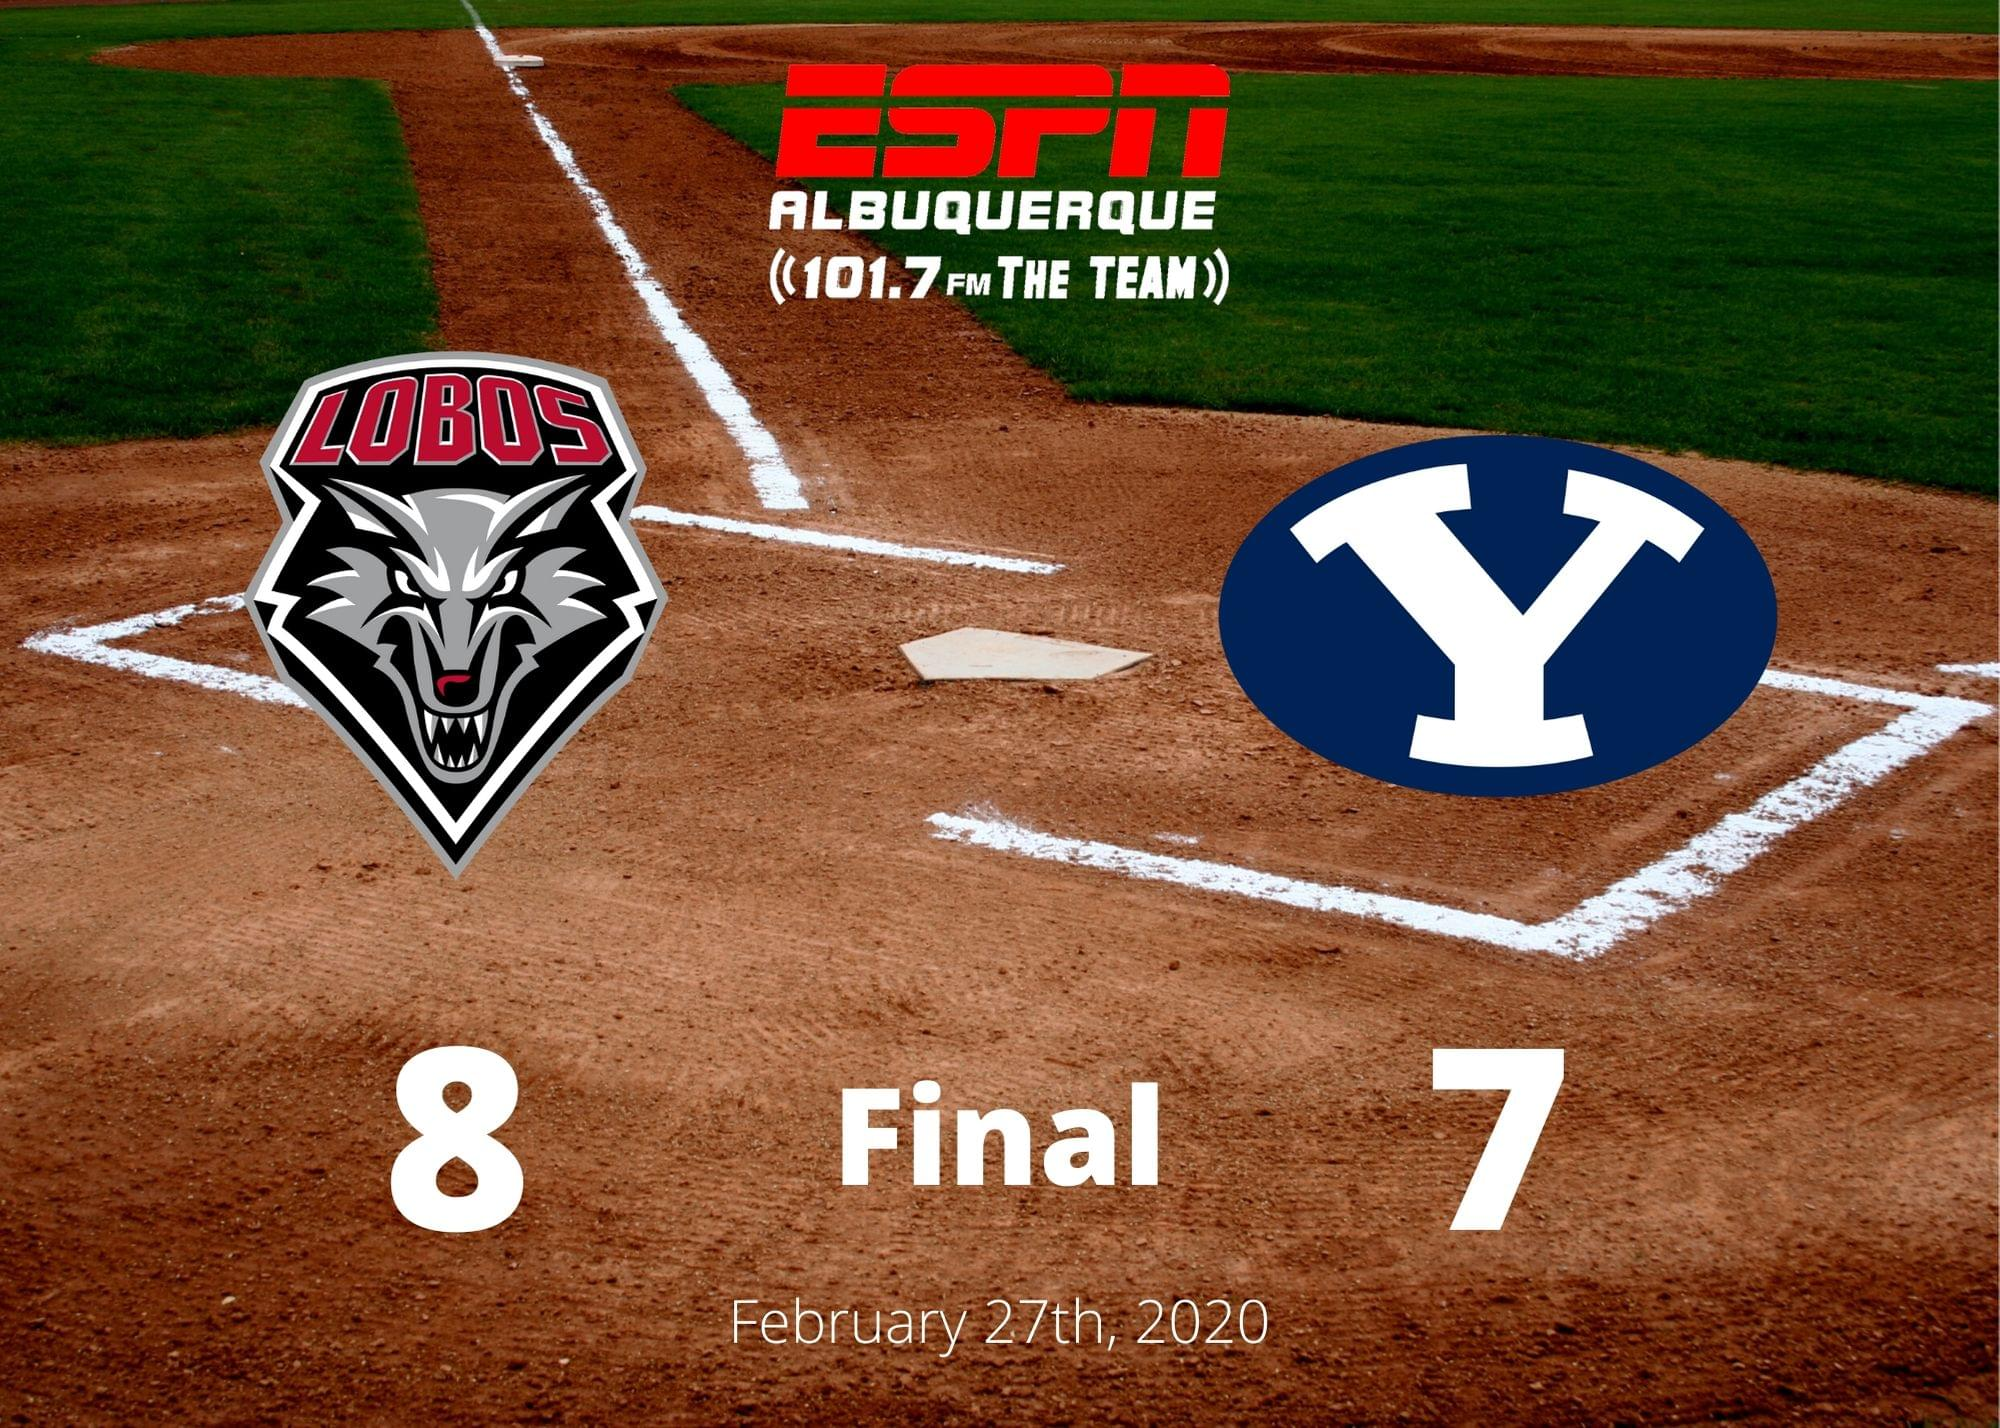 UNM Baseball: Lance Russell hits walk-off single as Lobos beat BYU 8-7